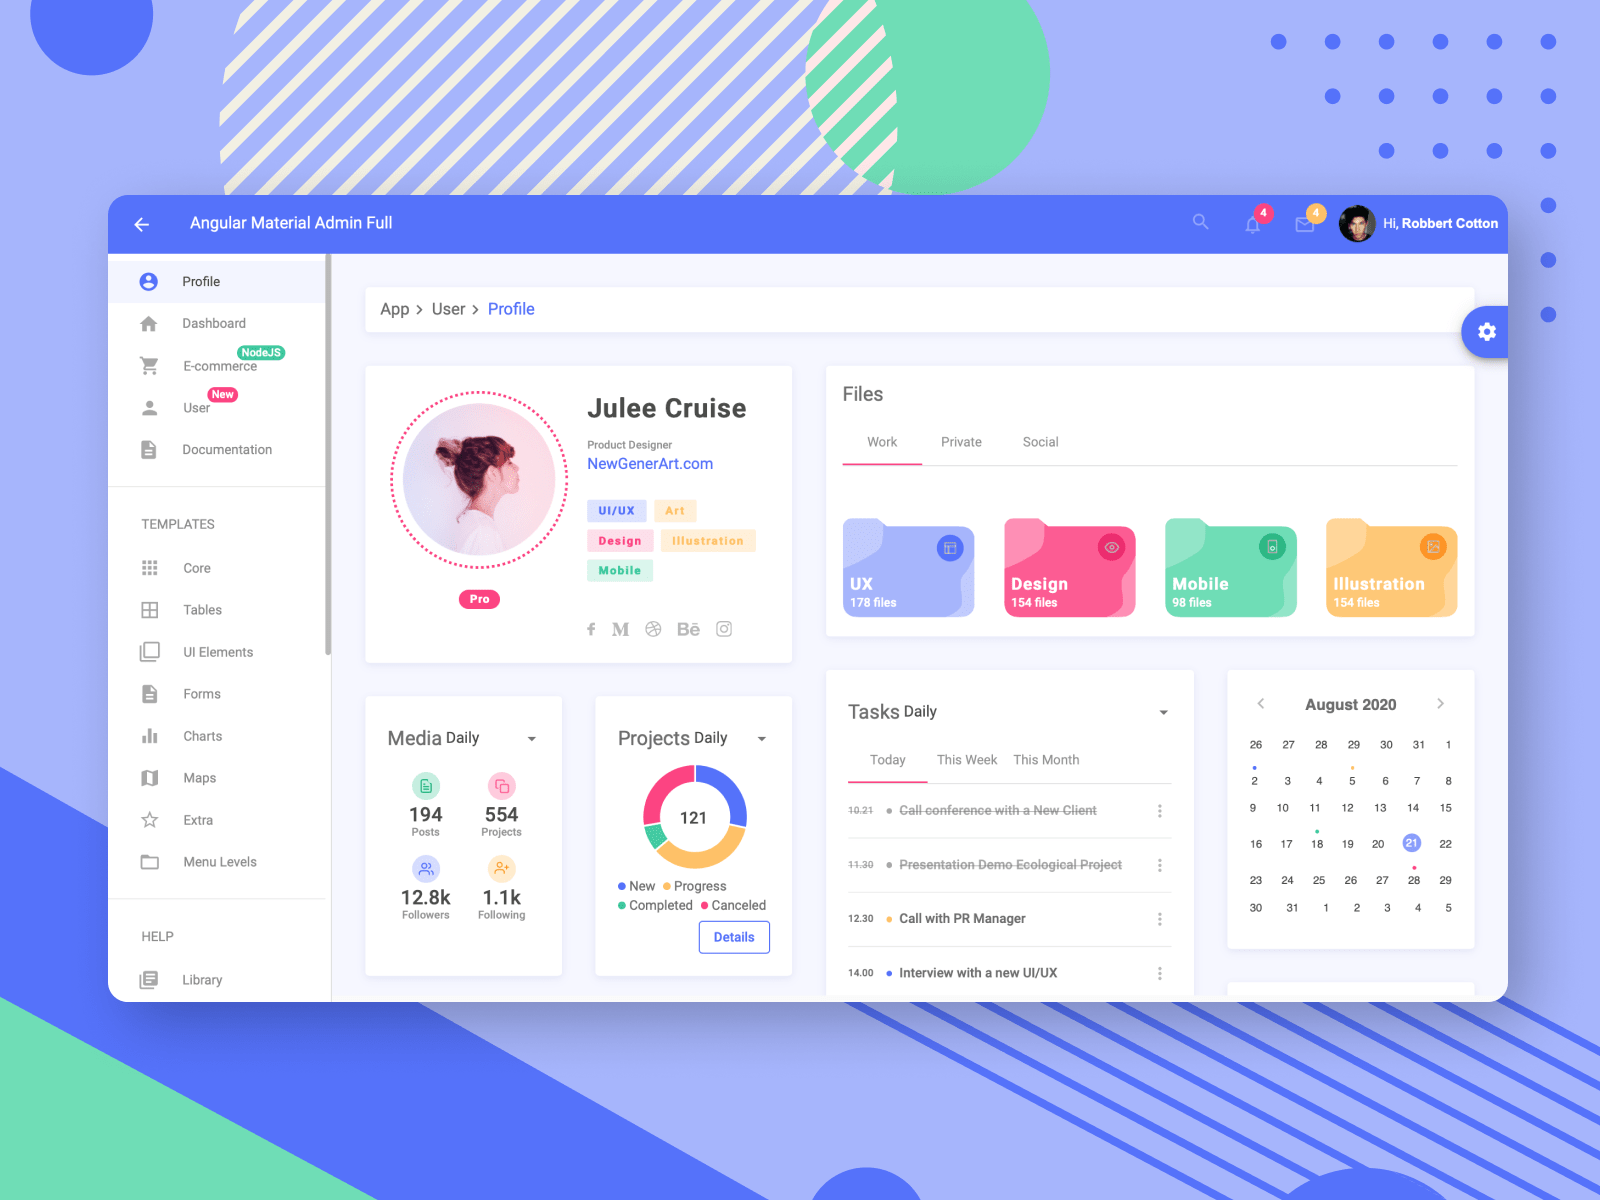 Angular Material Admin Template full version is released!